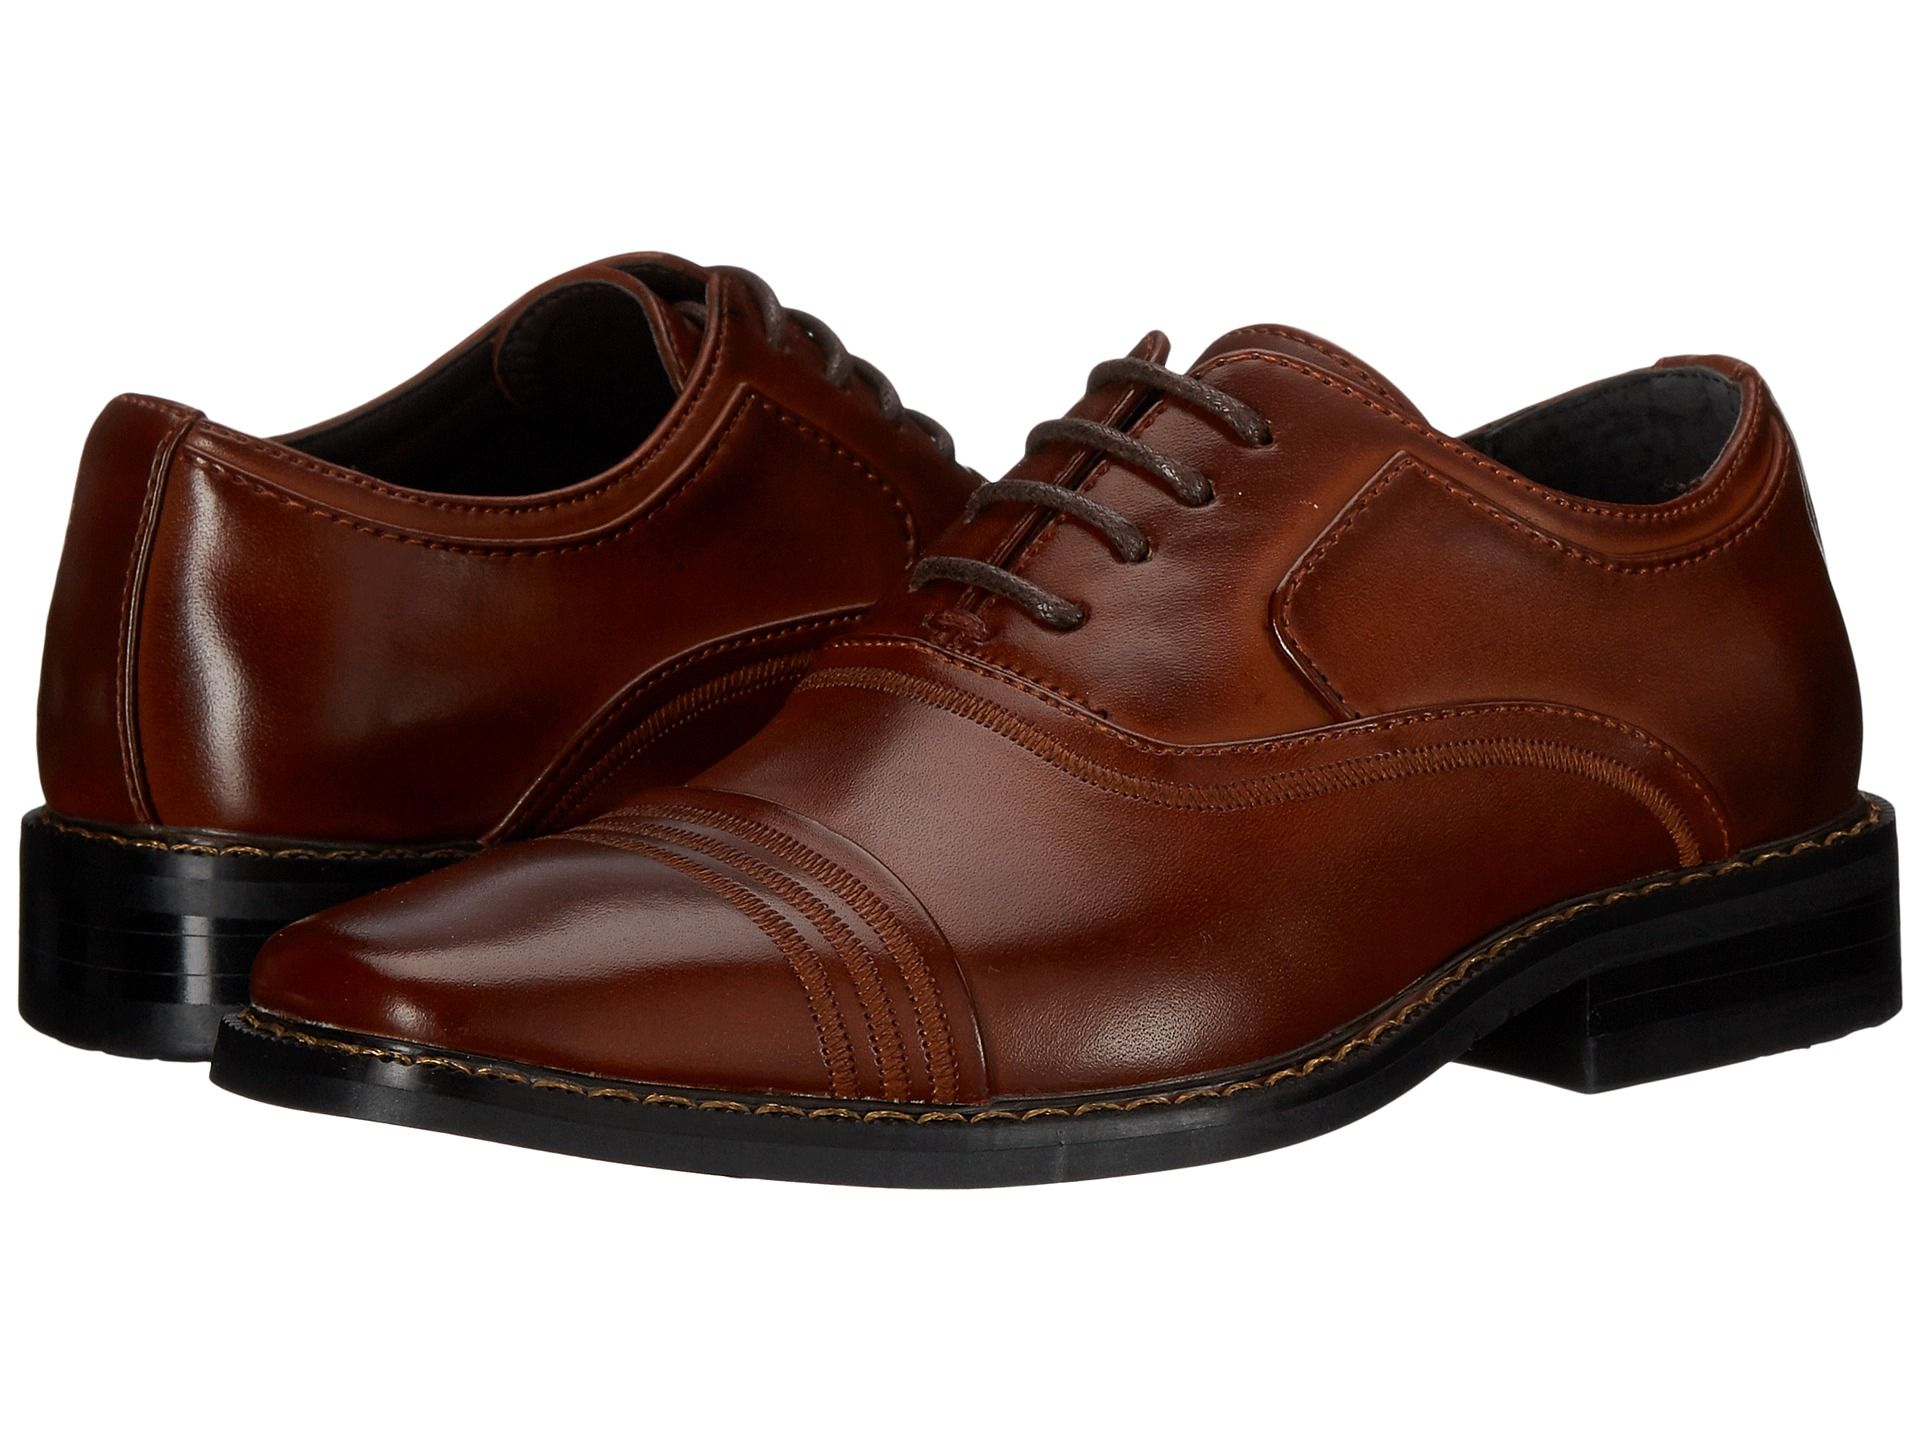 Stacy Adams Kids Dress Shoes Sale! Shop antminekraft85.tk's huge selection of Stacy Adams Kids Dress Shoes and save big! Over 25 styles available. FREE Shipping & Exchanges, and .